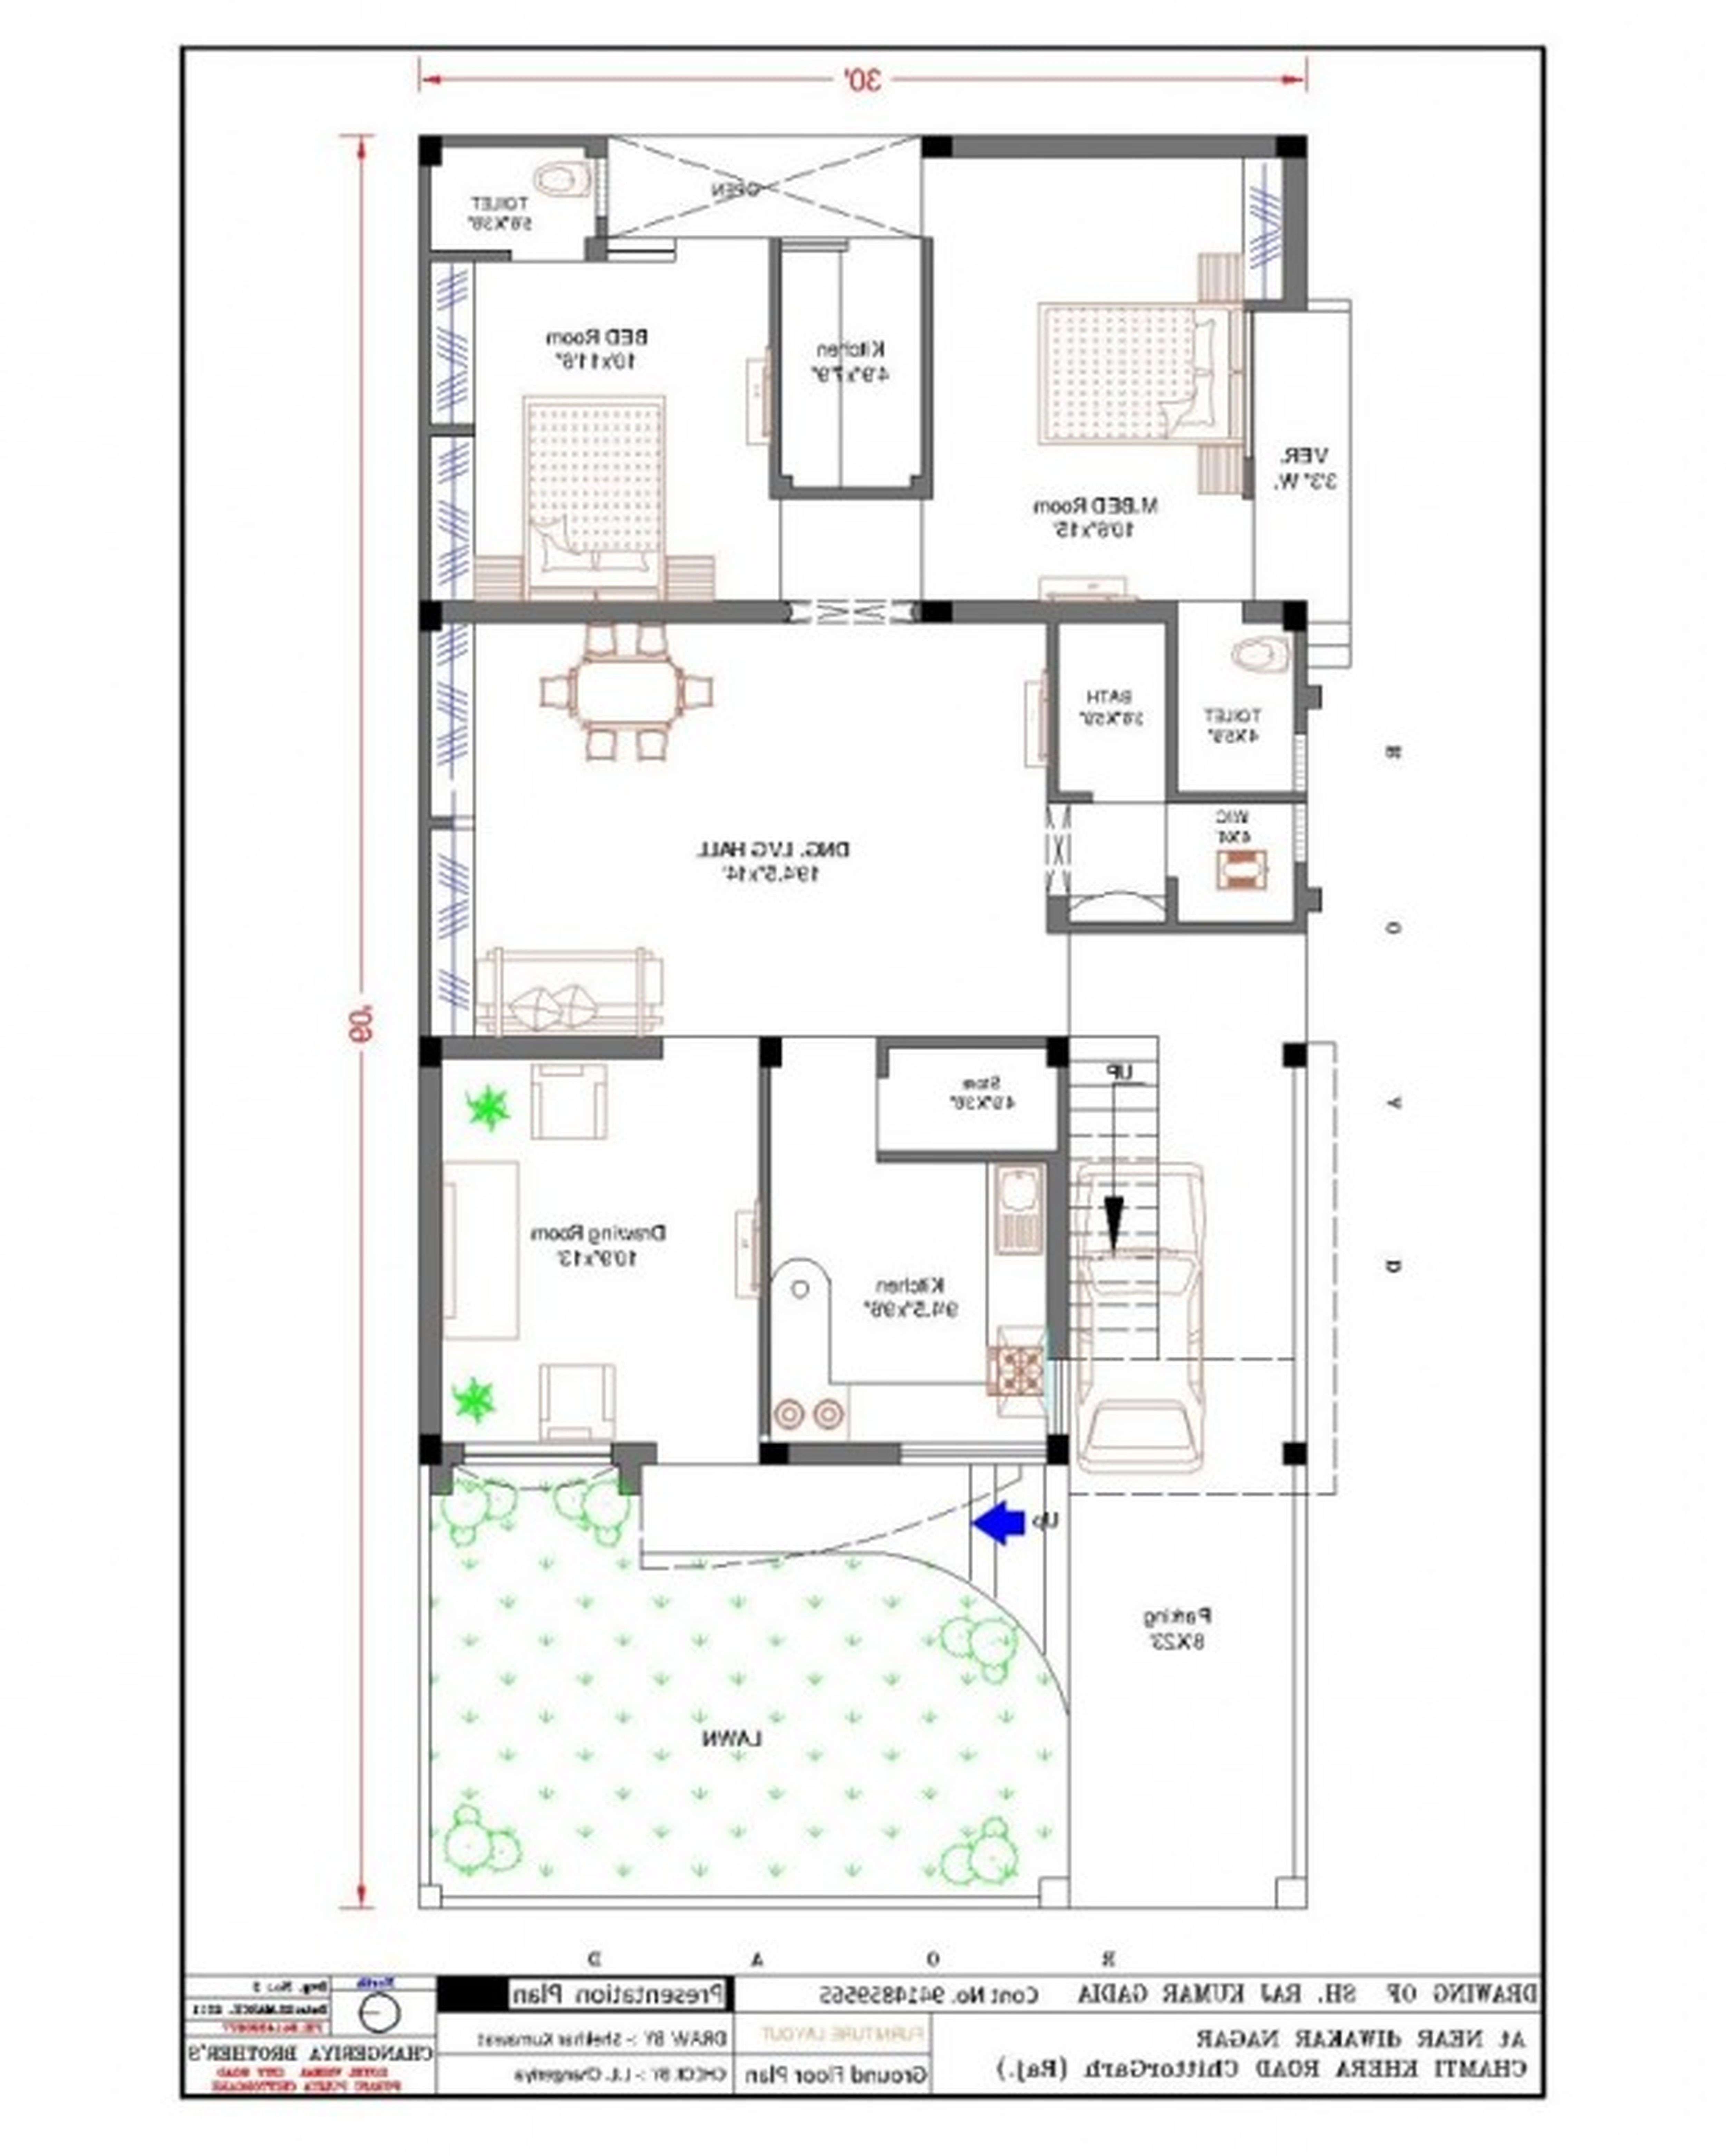 House Plans Online Free Inspirational Home Structure Design Plans